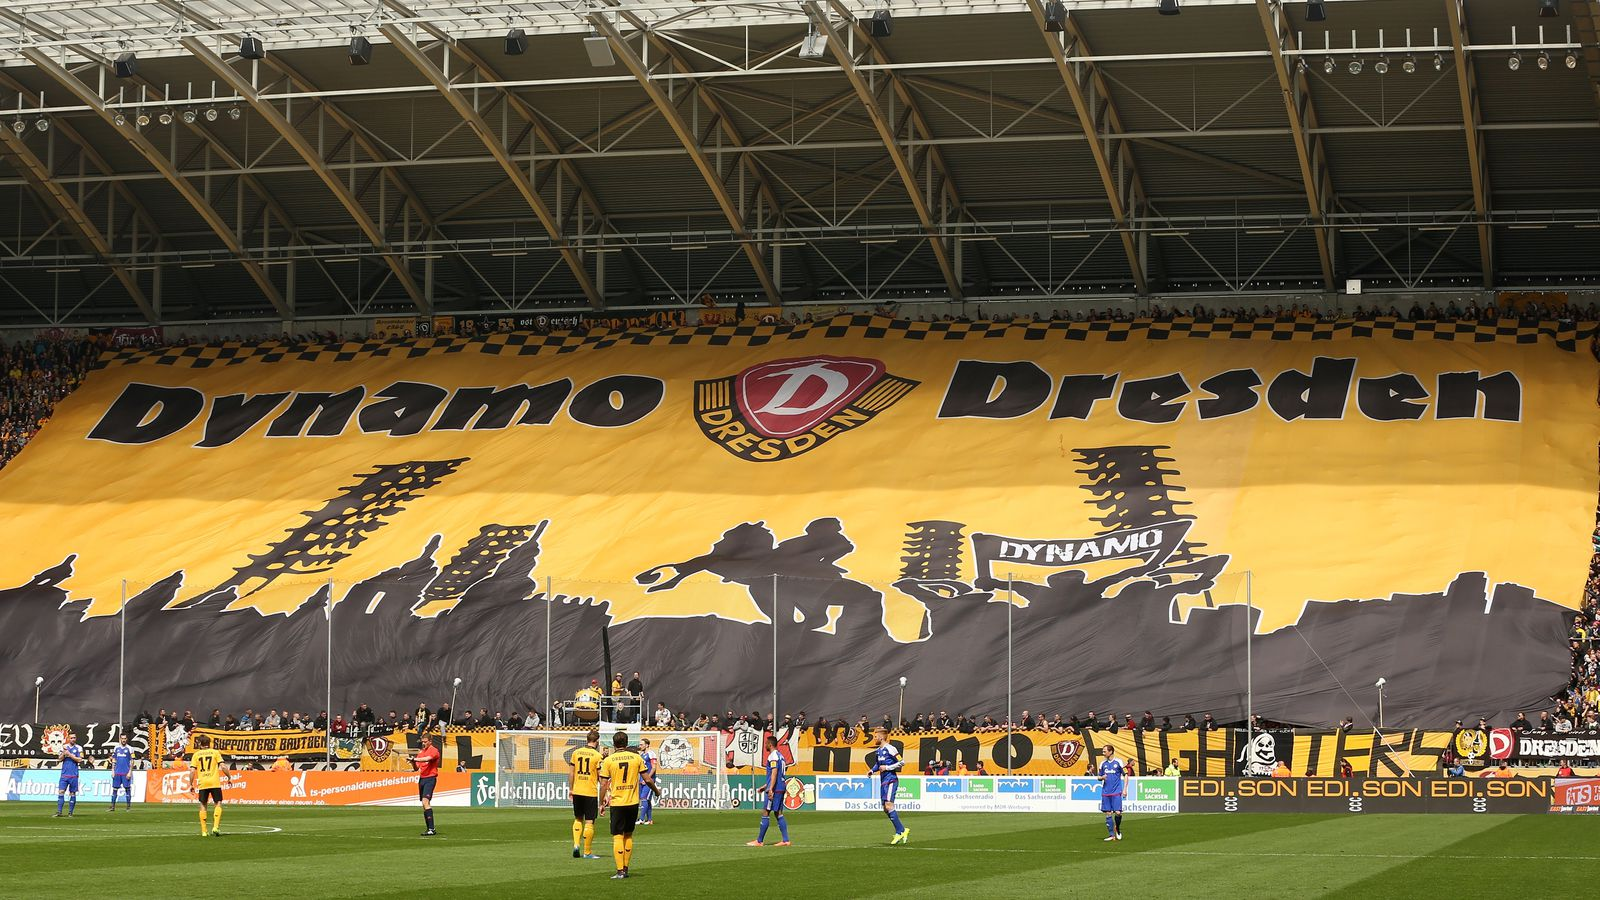 Dynamo Dresden: Everton At Dynamo: Preview, Start Time, TV